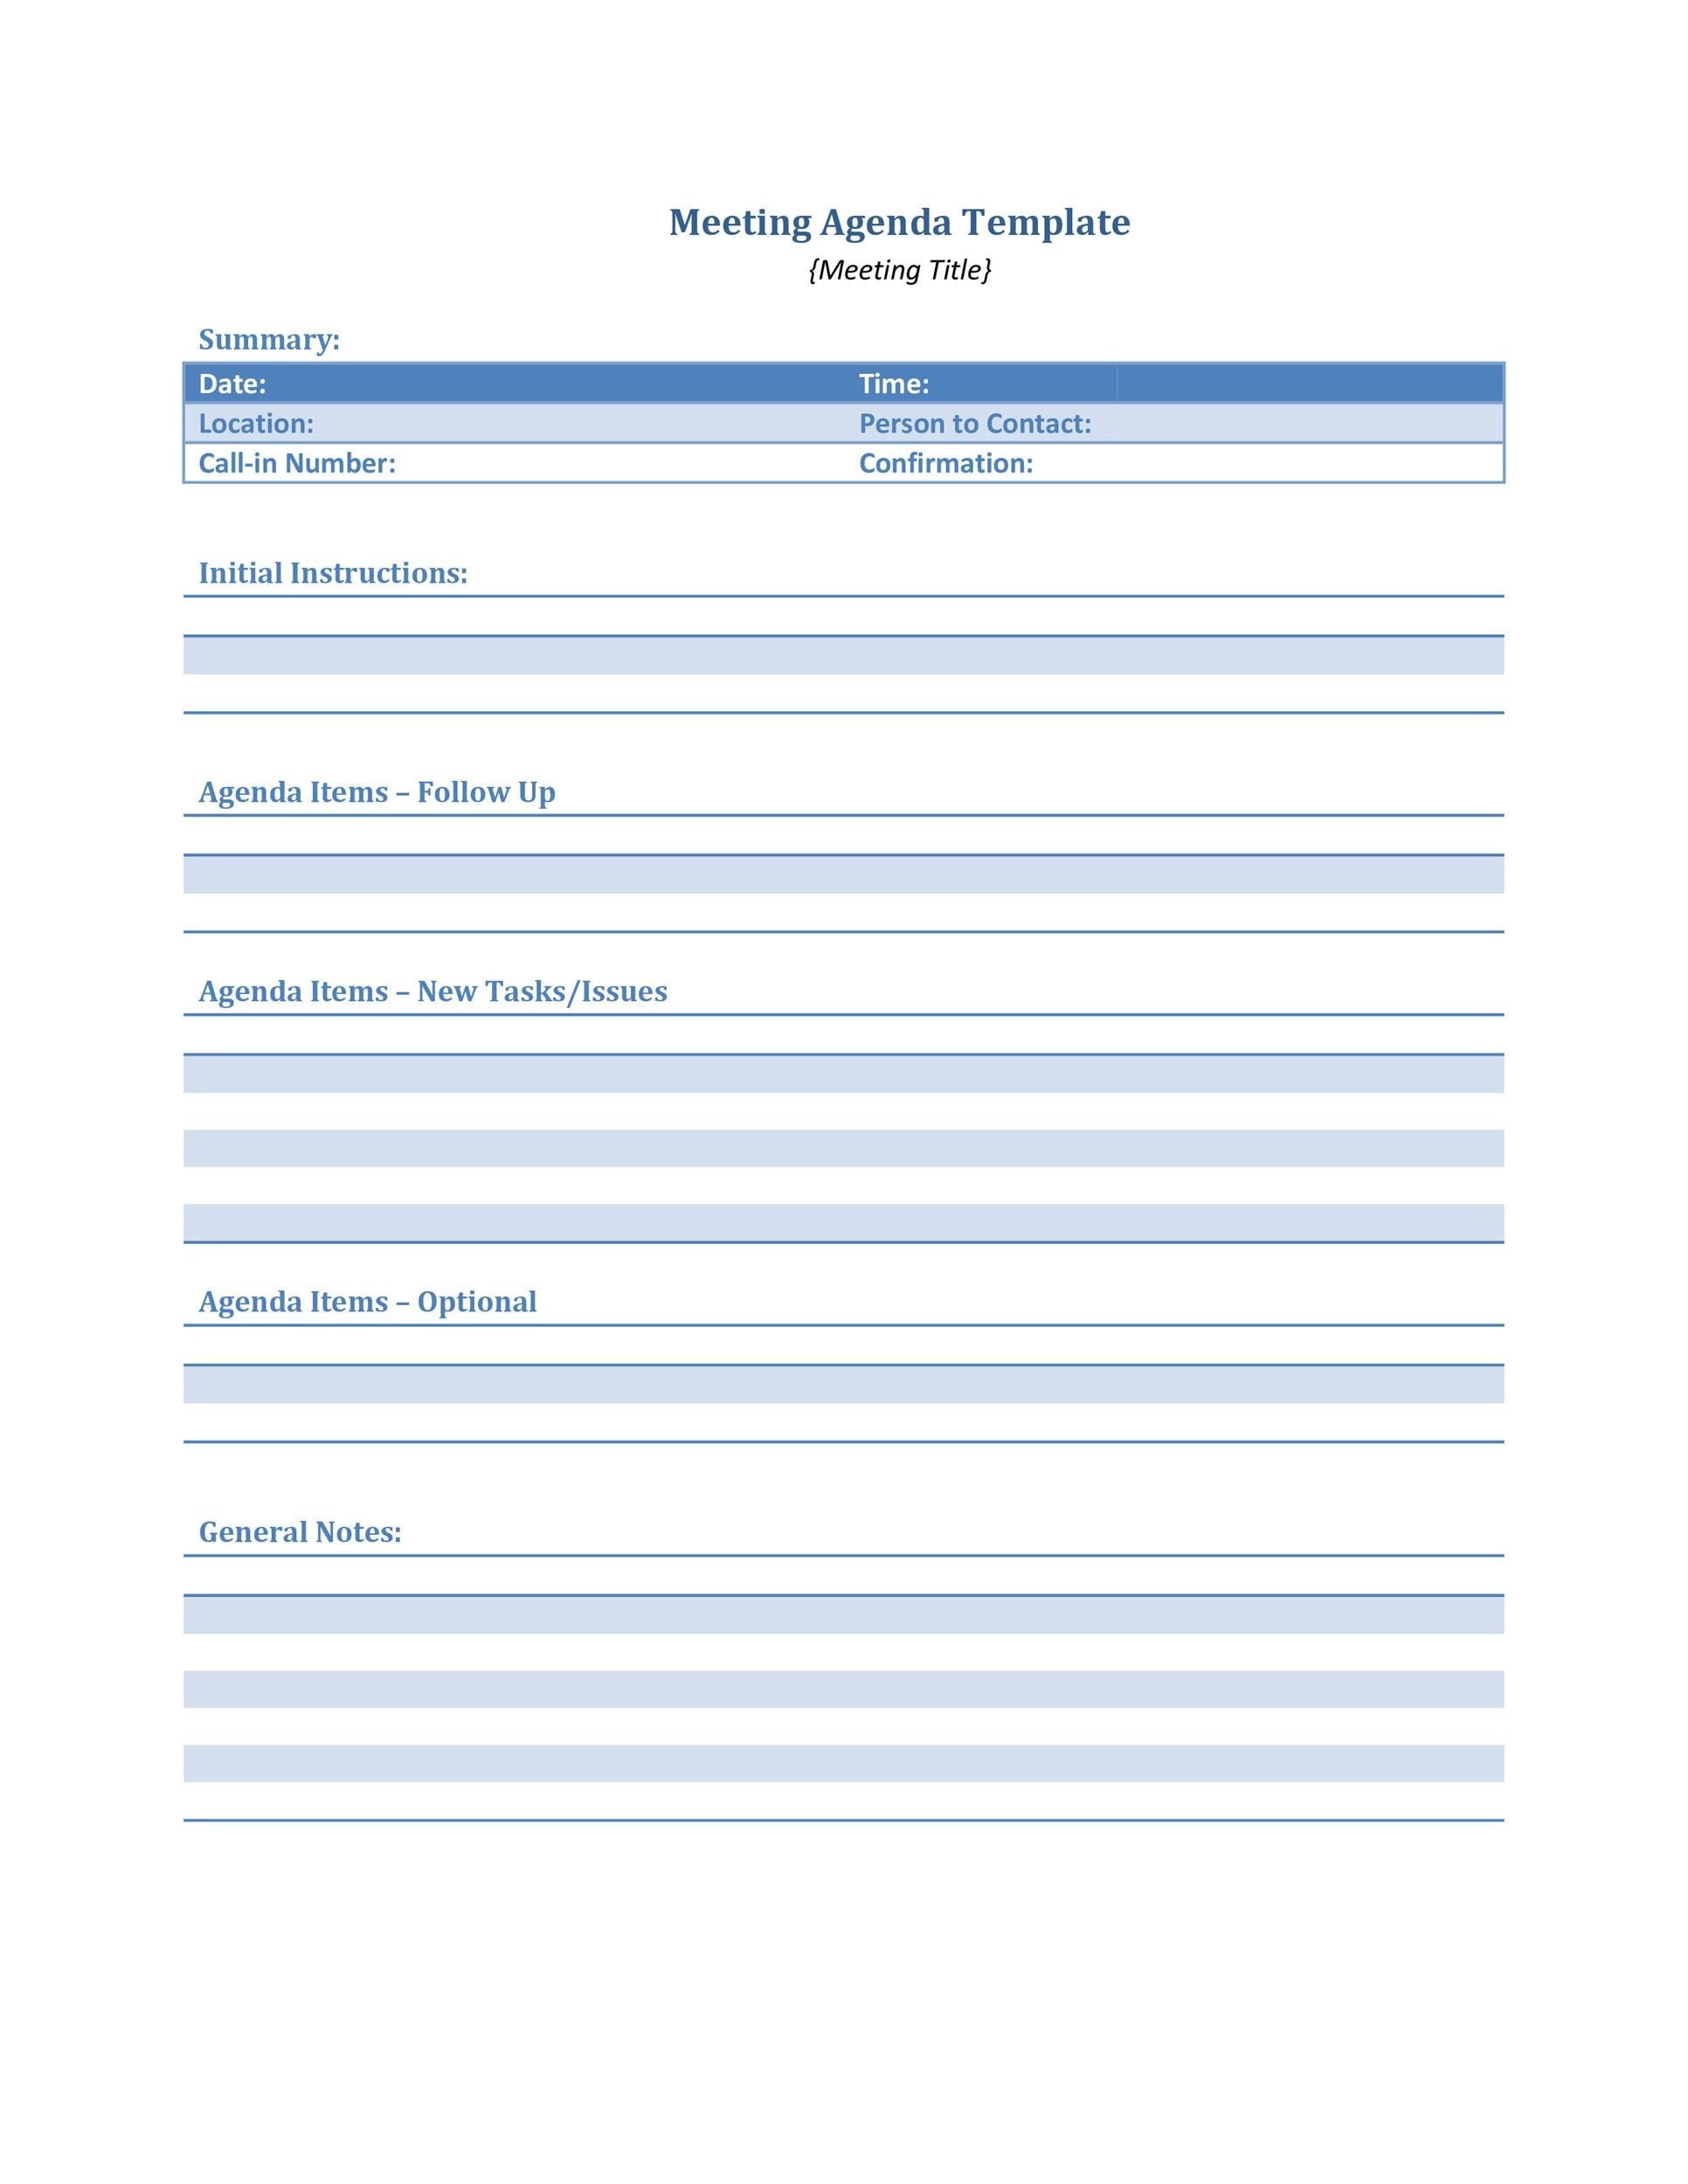 Meeting Agenda Template 33